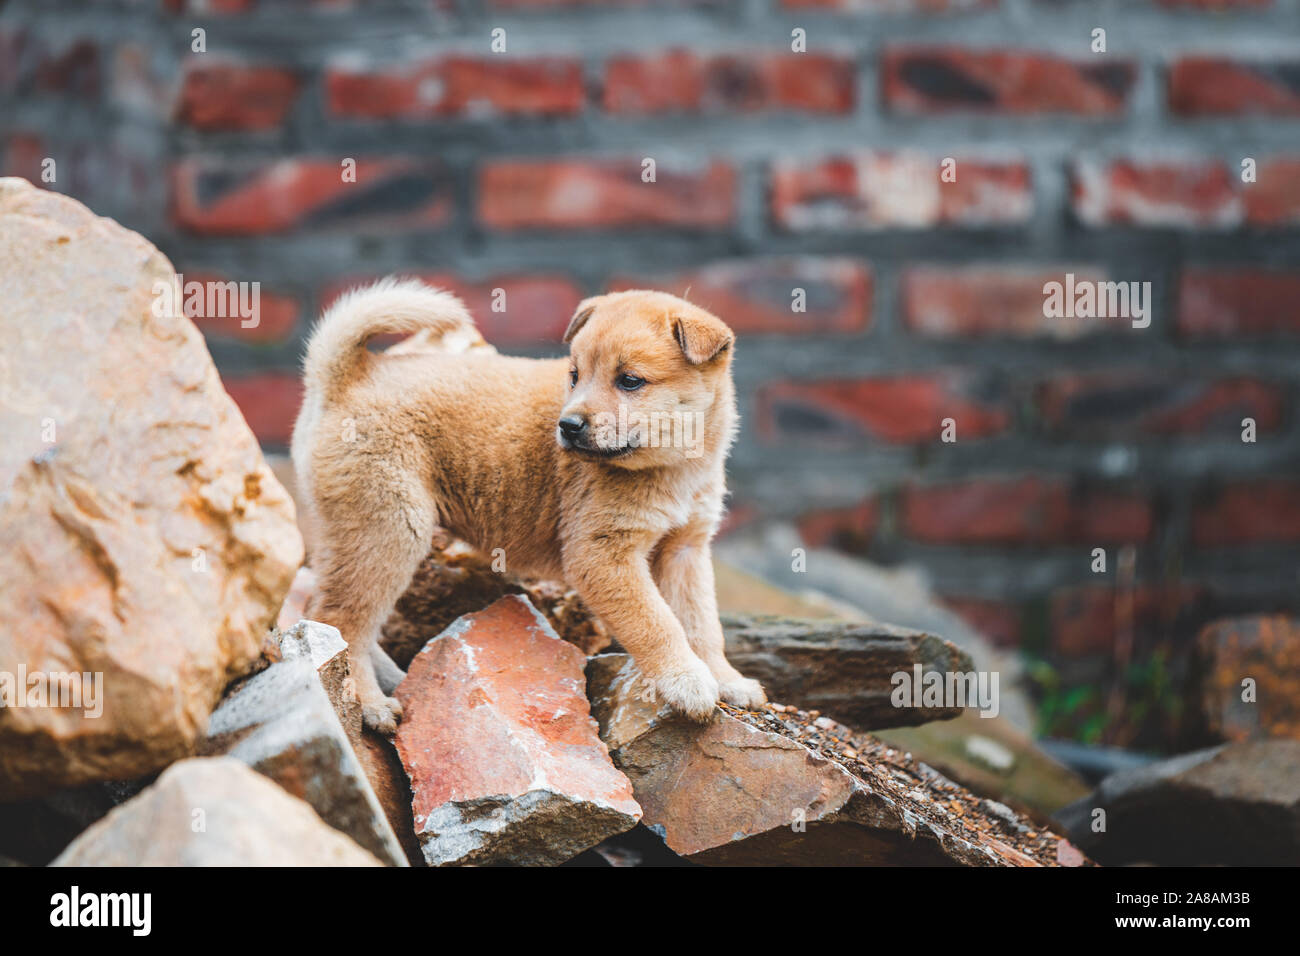 A cute lone abandoned puppy climbing on rubble after a house collapsed in Vietnam Stock Photo